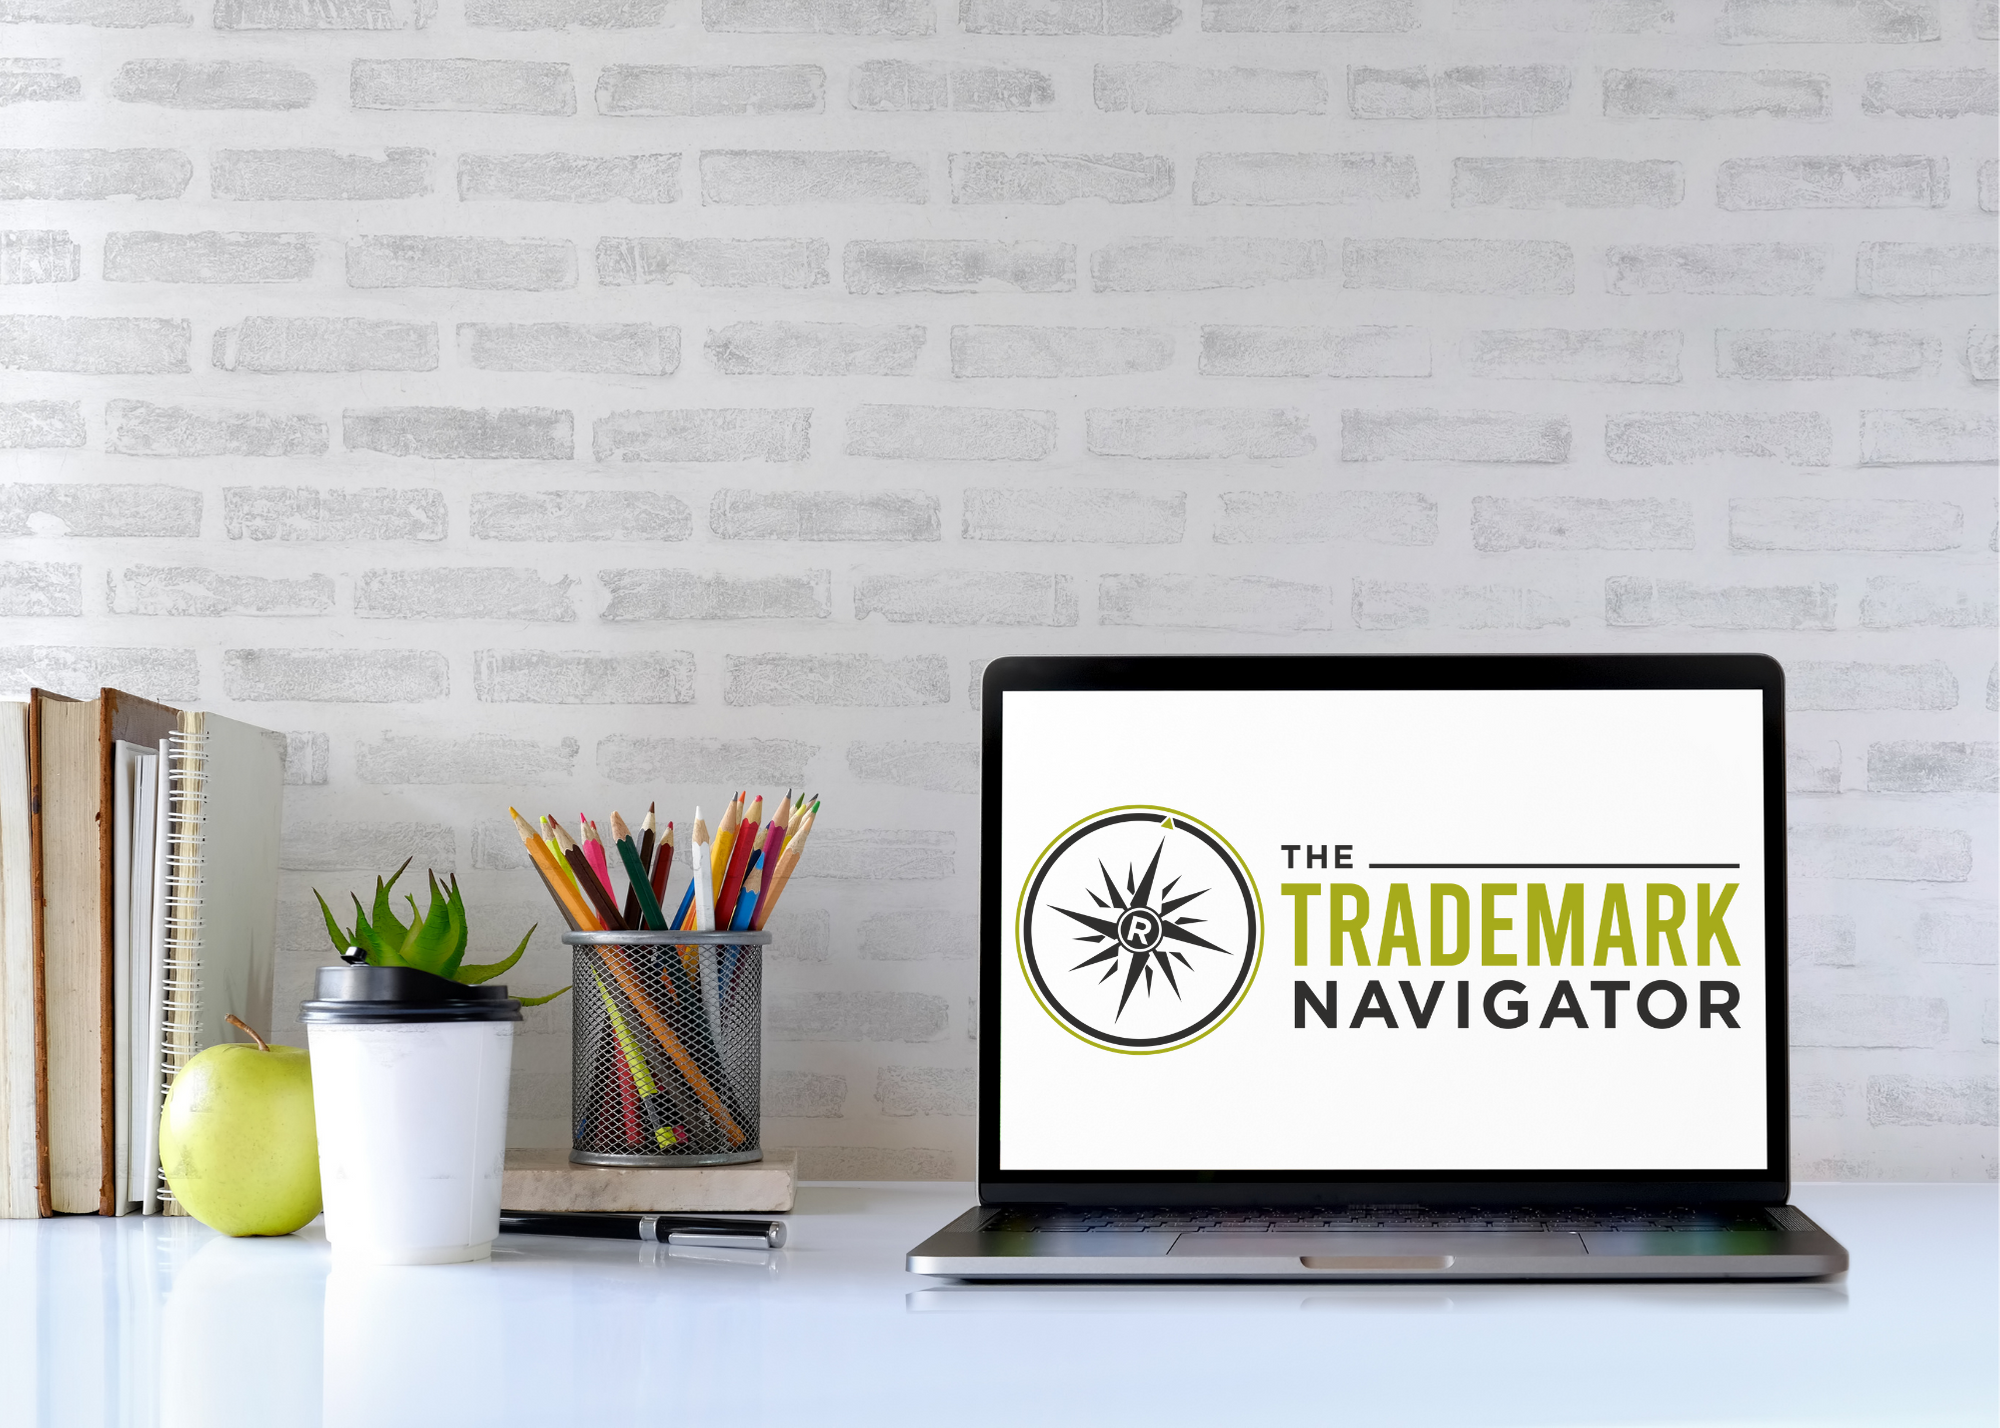 How to apply for a trademark